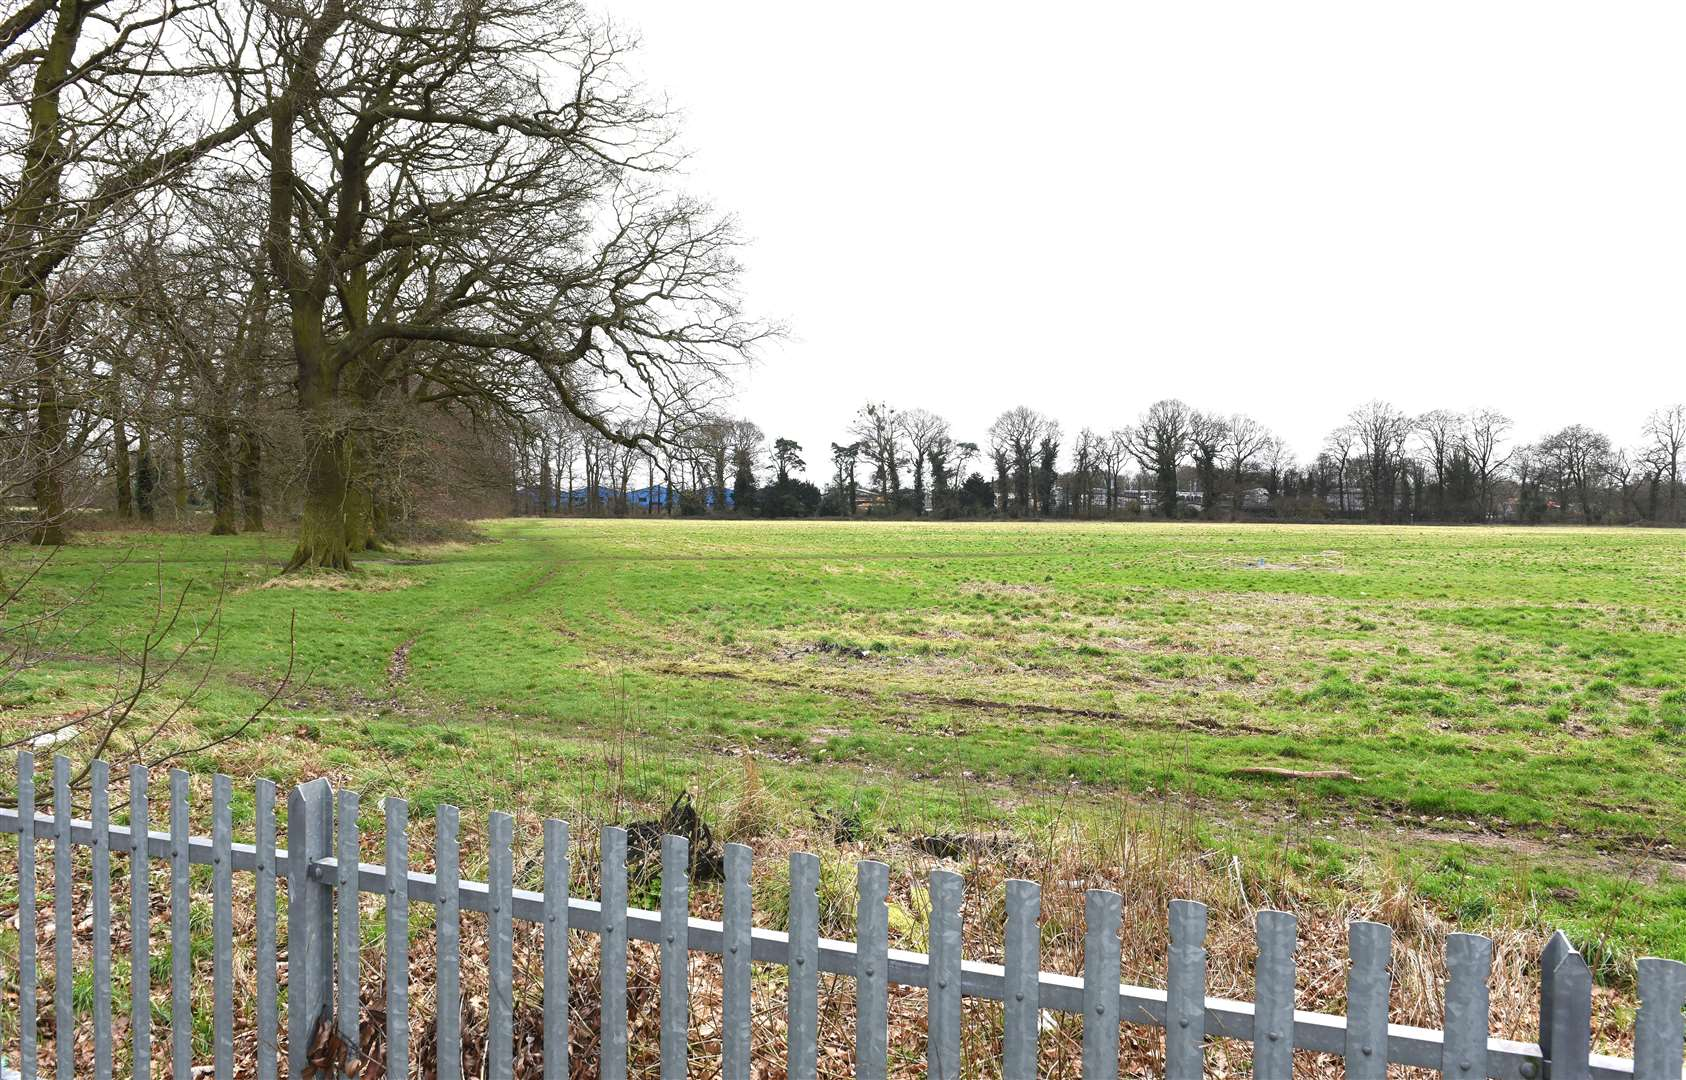 GV Picture of Land which is being Proposed for Possible New Housing Development for the Gaywood Area...Land between King's Lynn Academy Site off Queen Mary Road/Parkway Gaywood and Howard Junior School. (49529279)